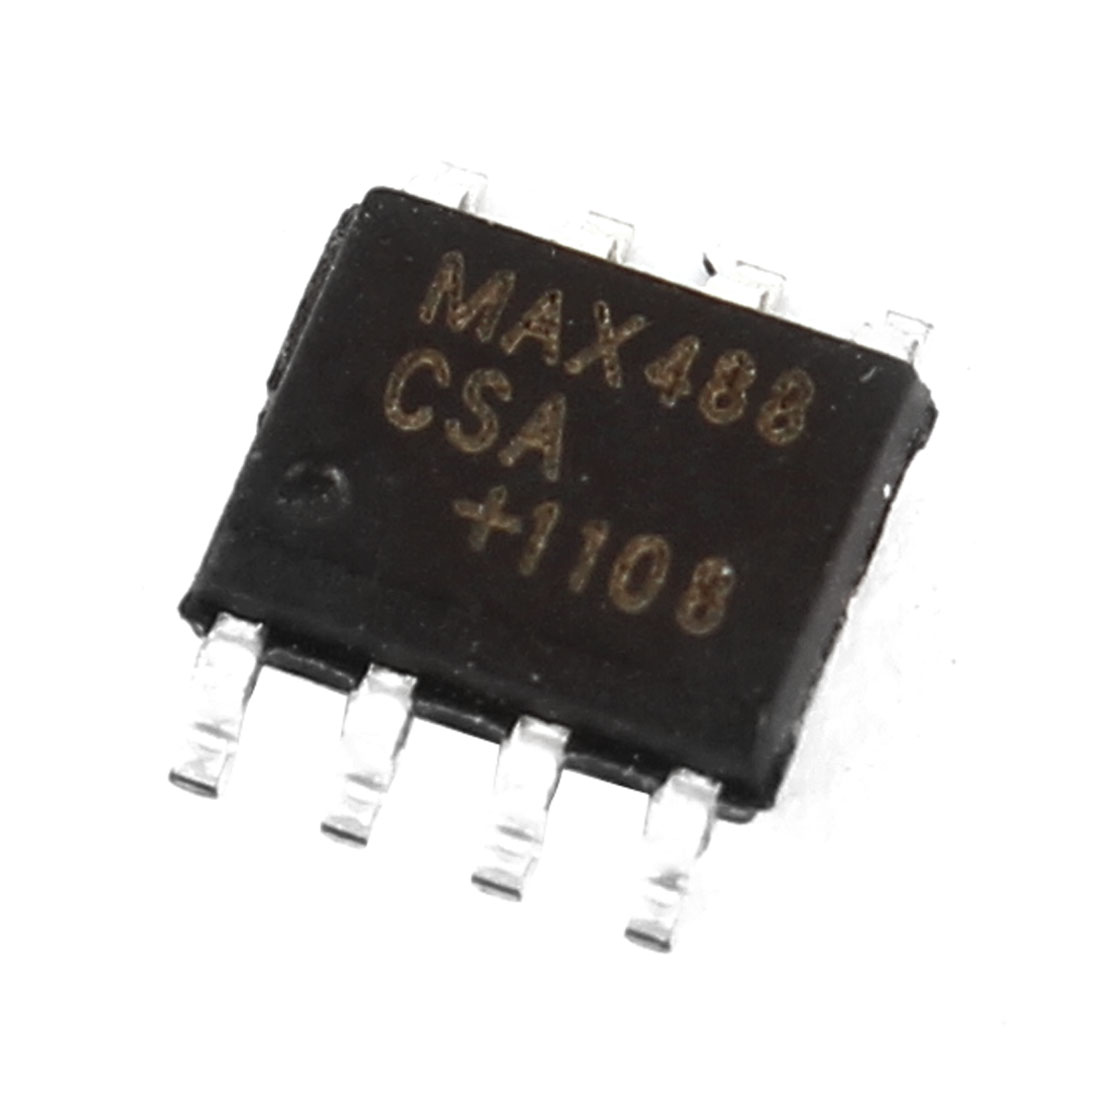 MAX488CSA SOP-8 SMD SMT Type PCB Surface Mounting General Purpose Slew-Rate-Limited Transceiver Integrated Circuit IC Chip